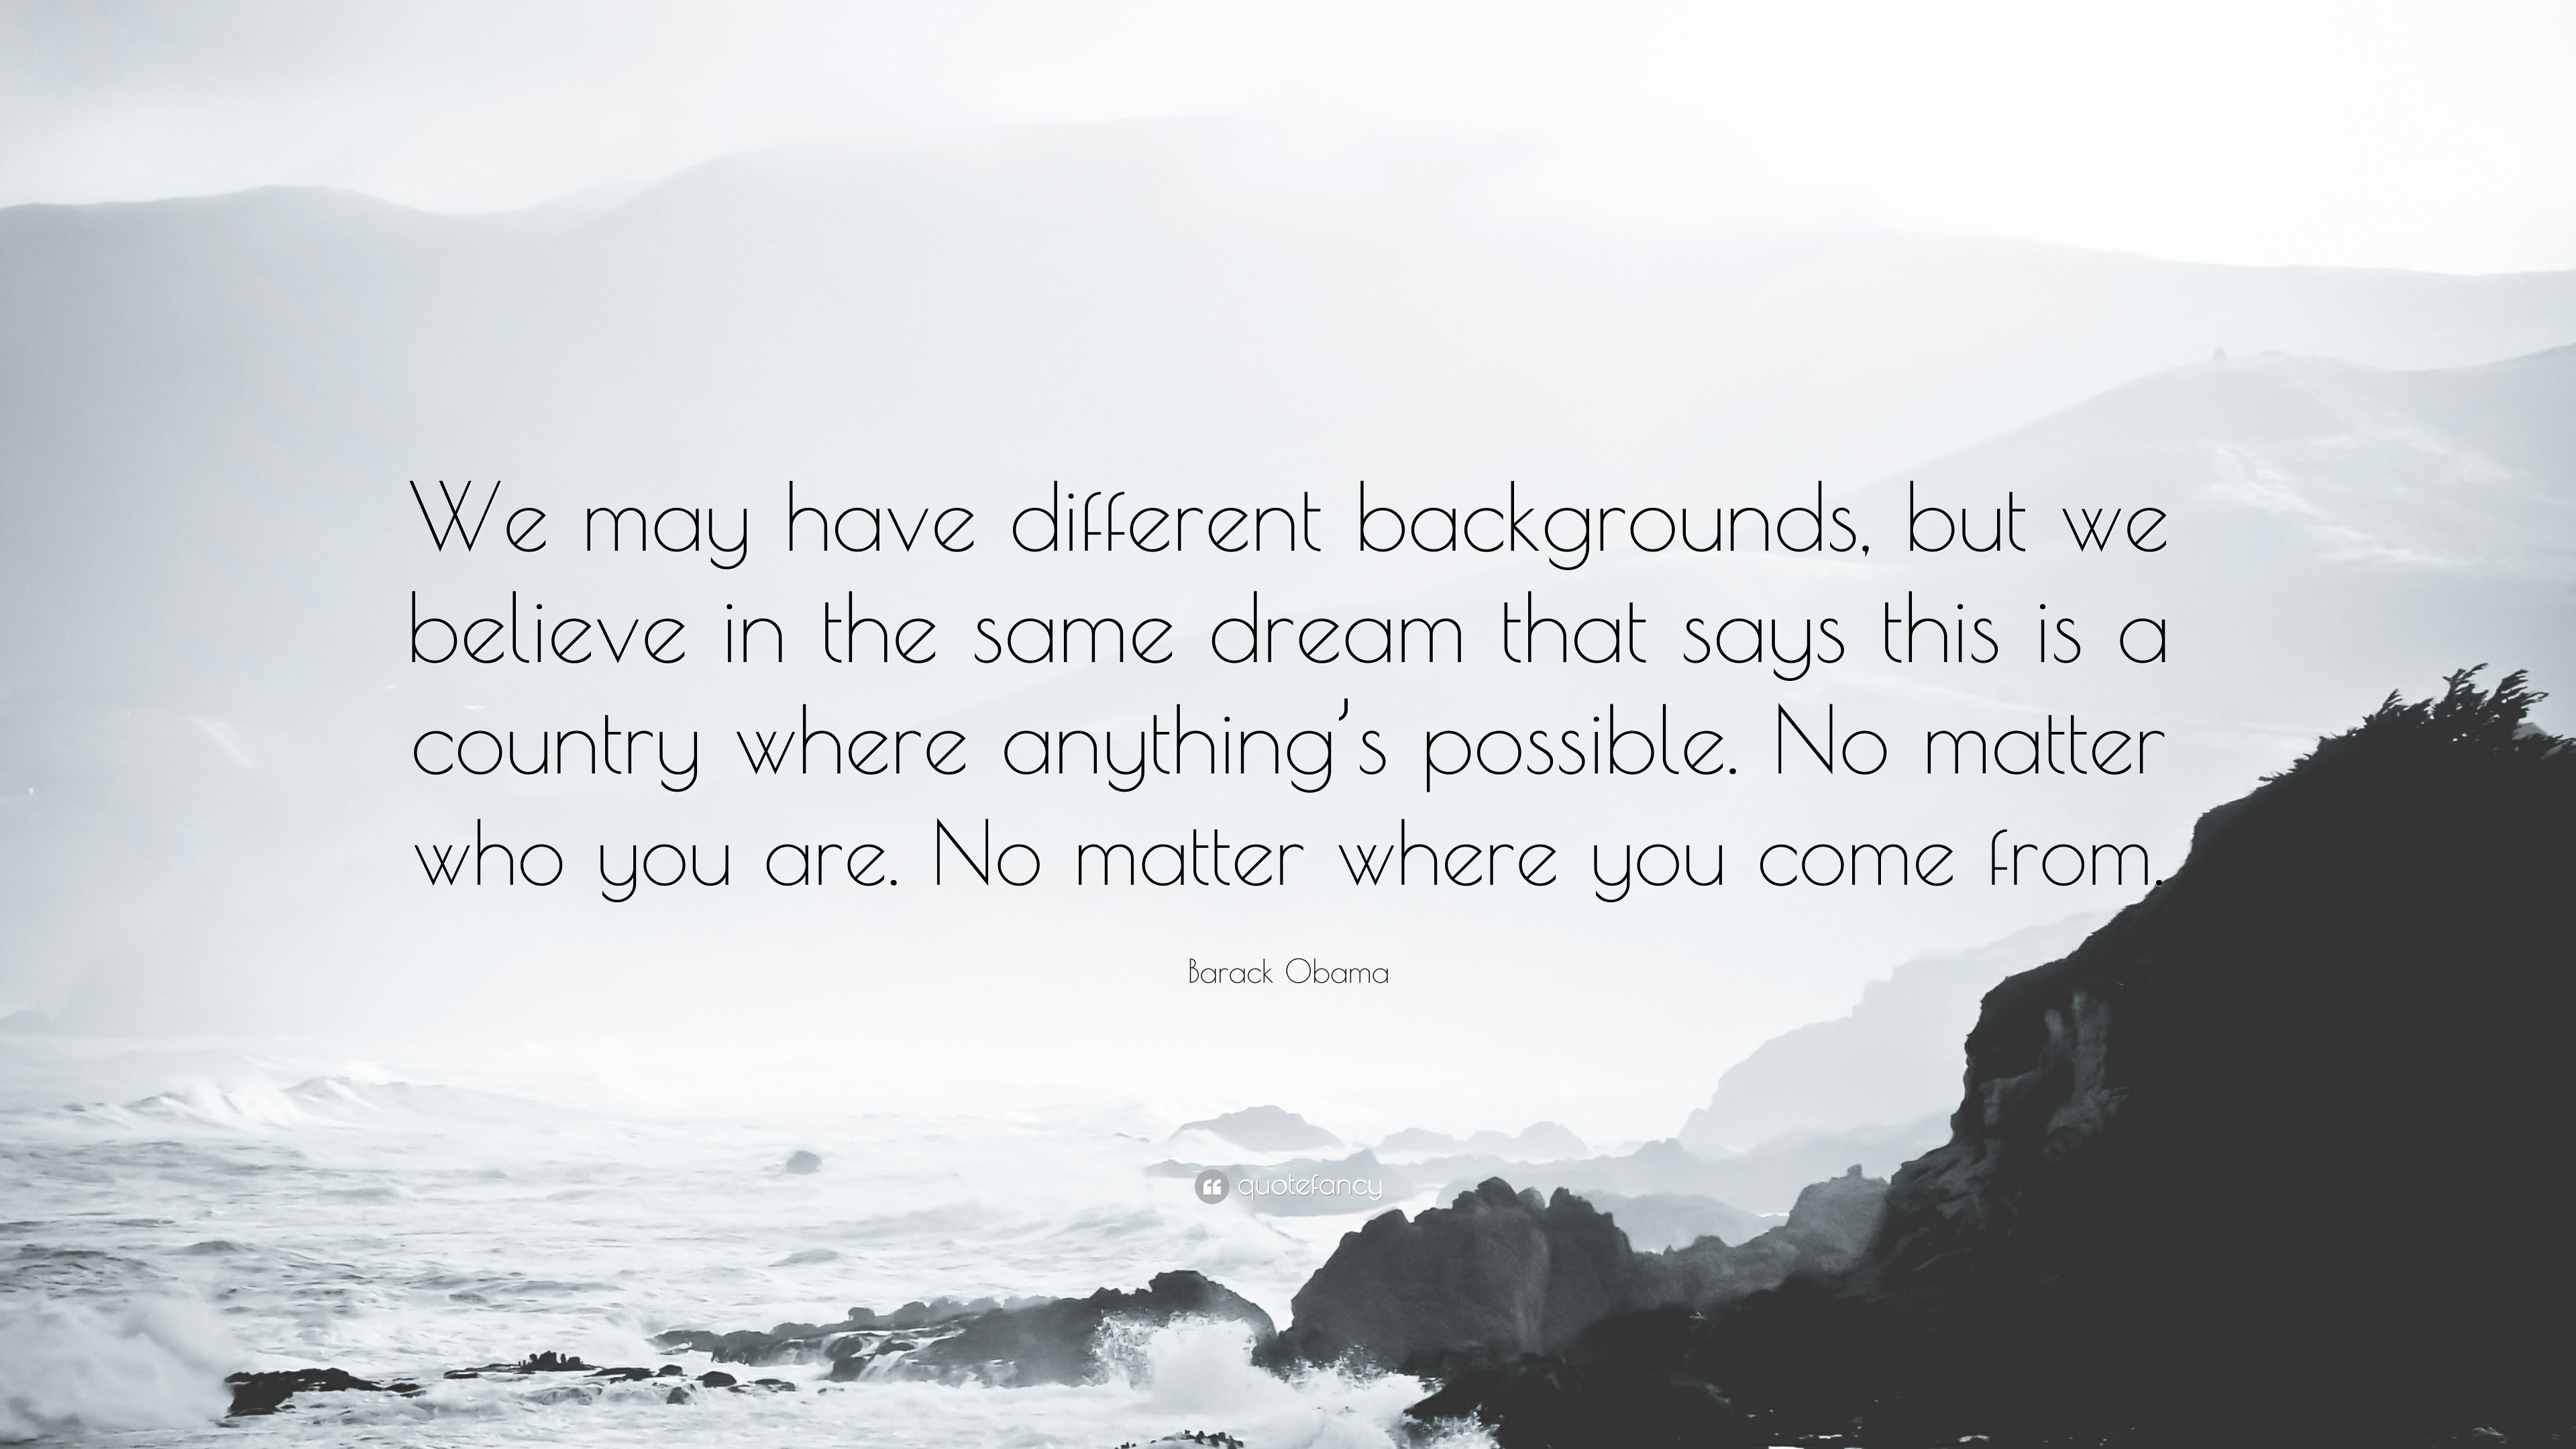 Download 96 Background And Quotes HD Gratis